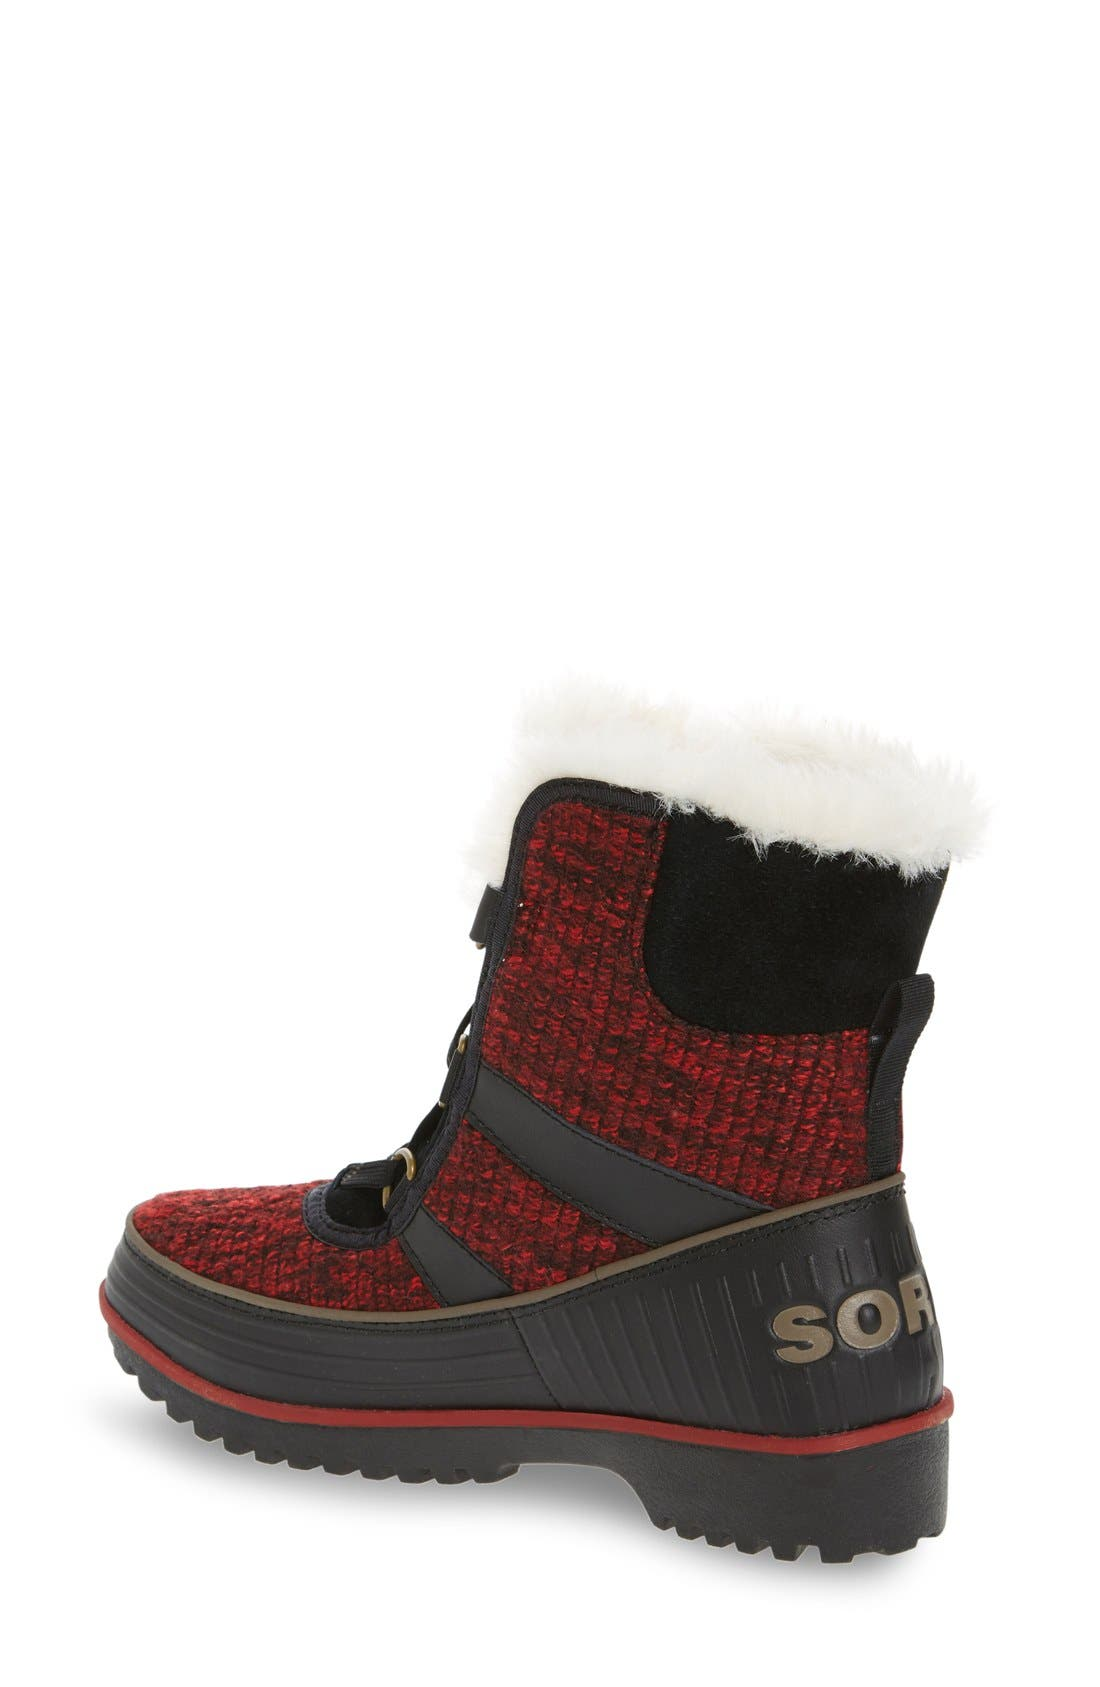 Alternate Image 2  - SOREL 'Tivoli II' Waterproof Boot (Women)